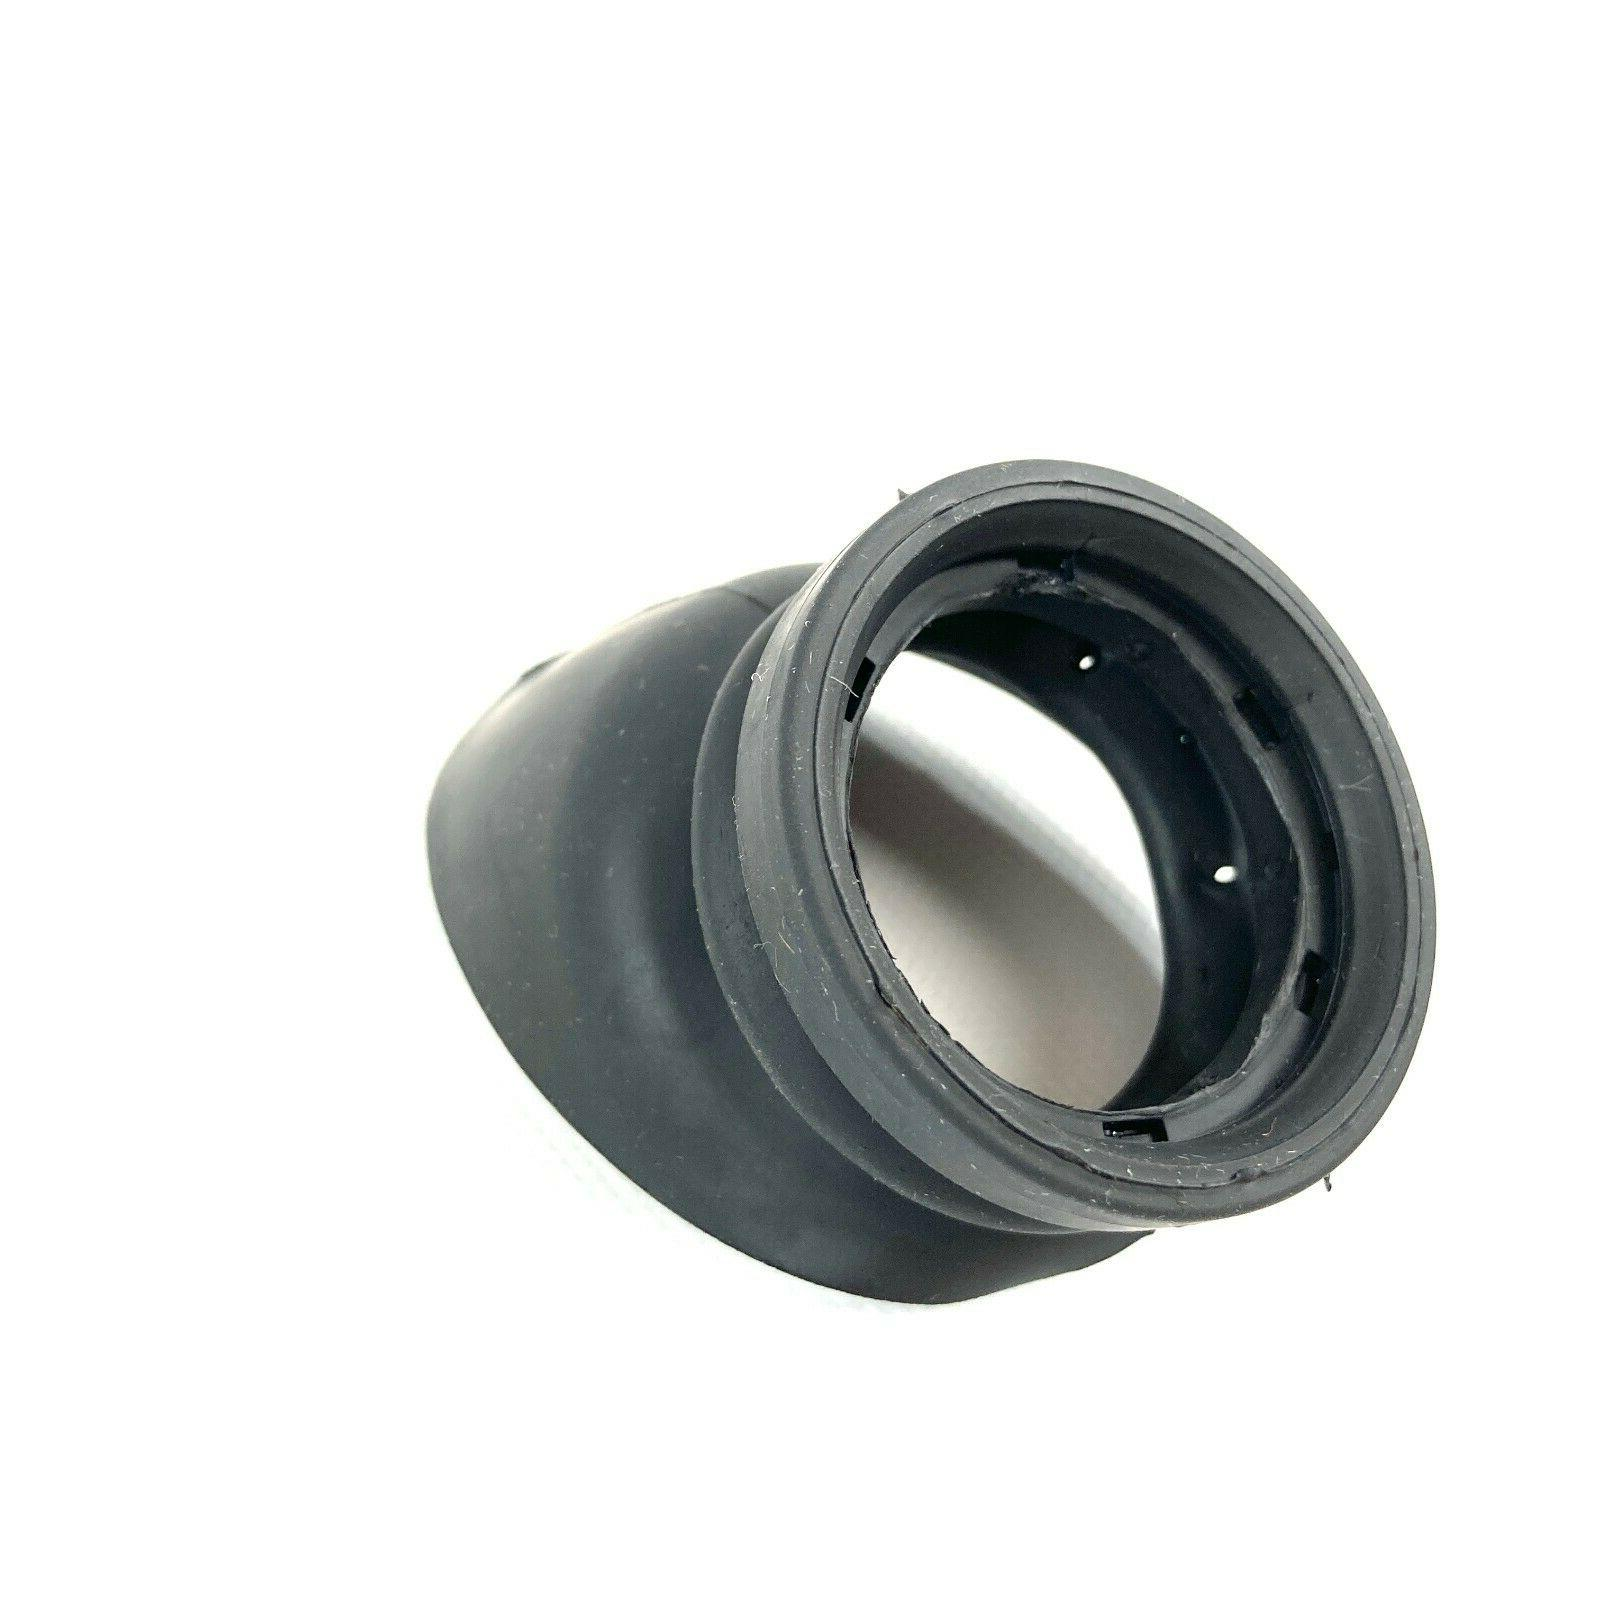 Night Vision Eye Cup for PVS-7 and 14, Eyecup